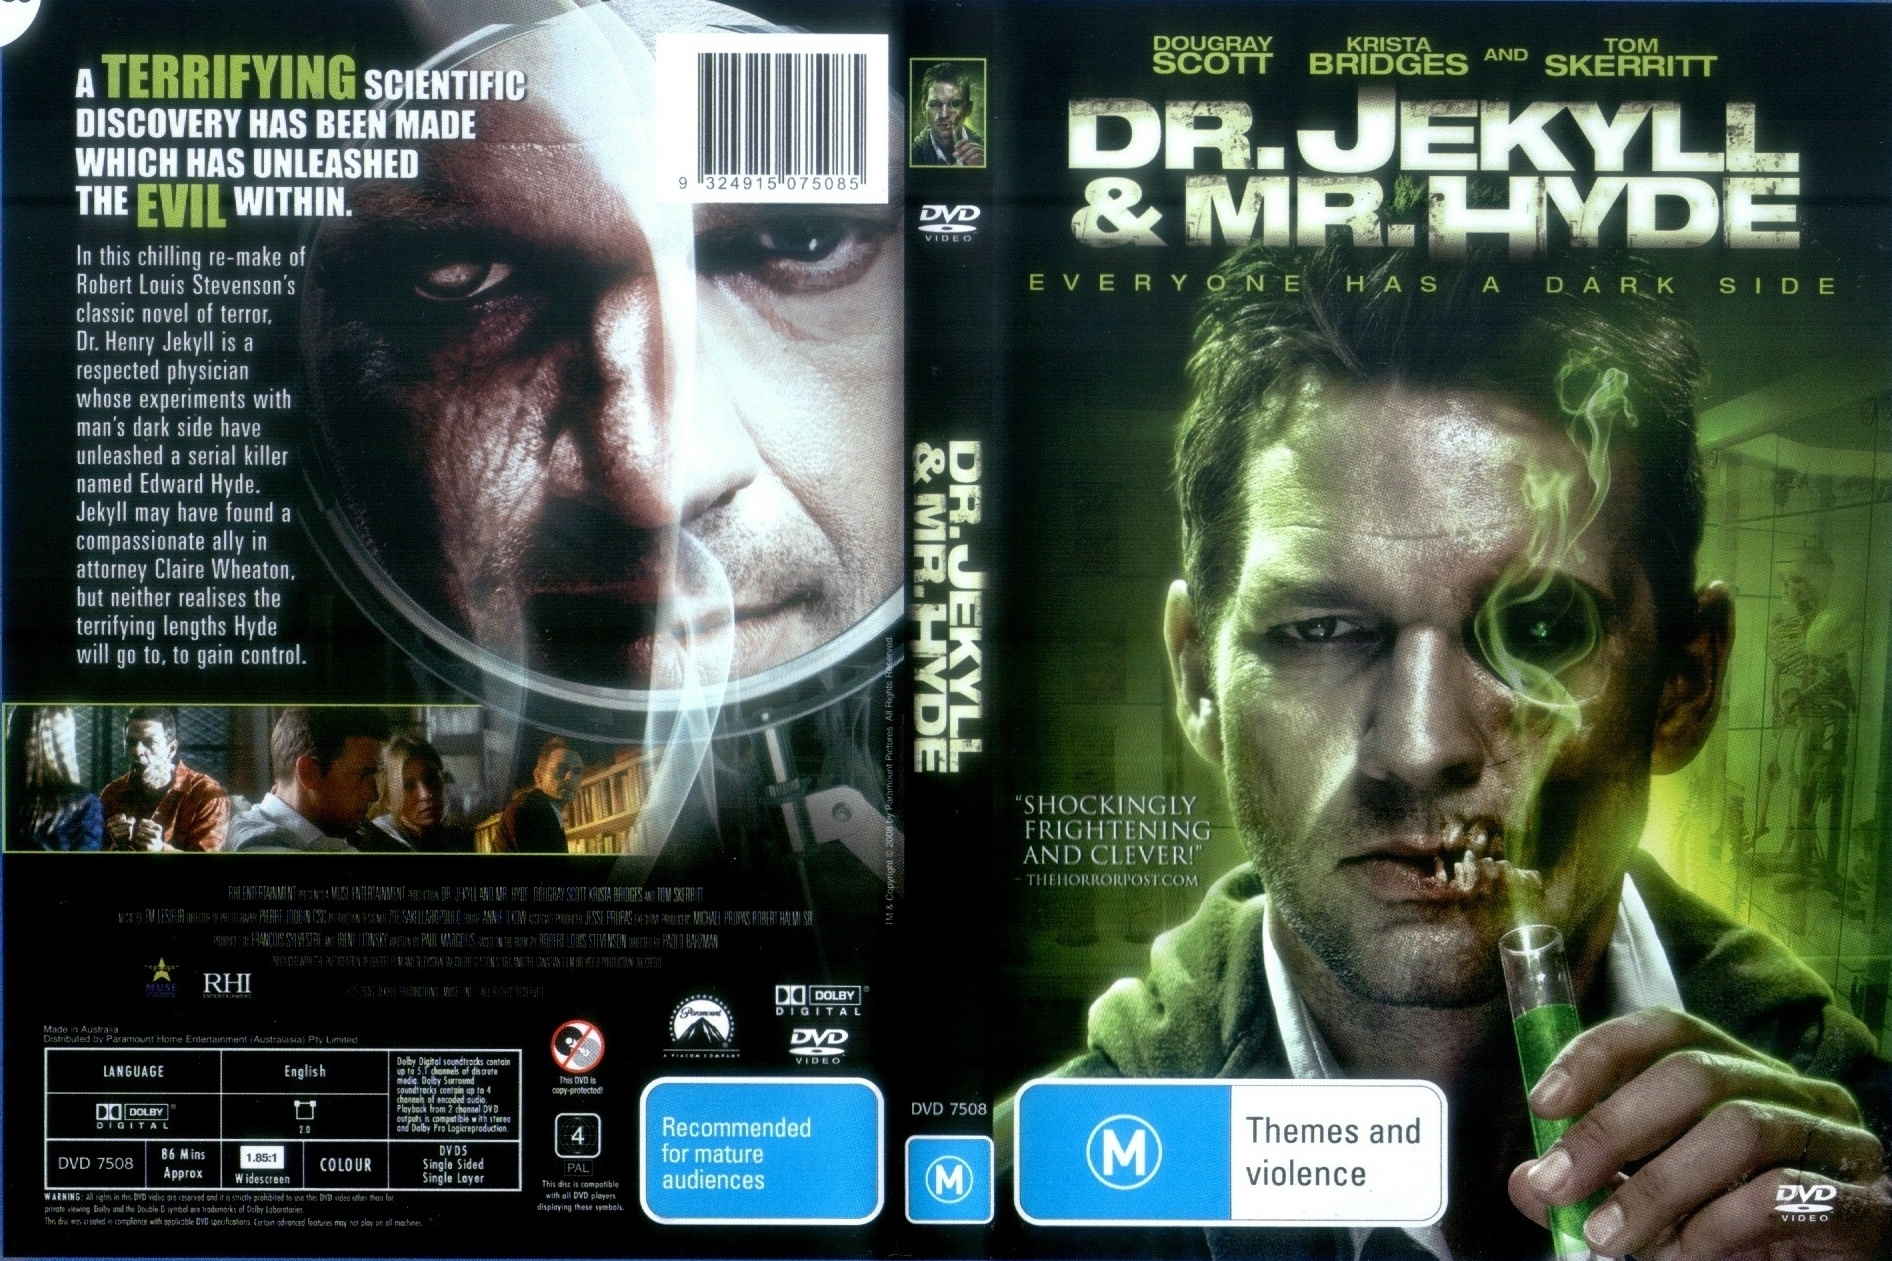 Dr. Jekyll and Mr. Hyde (Paolo Barzman, 2008)